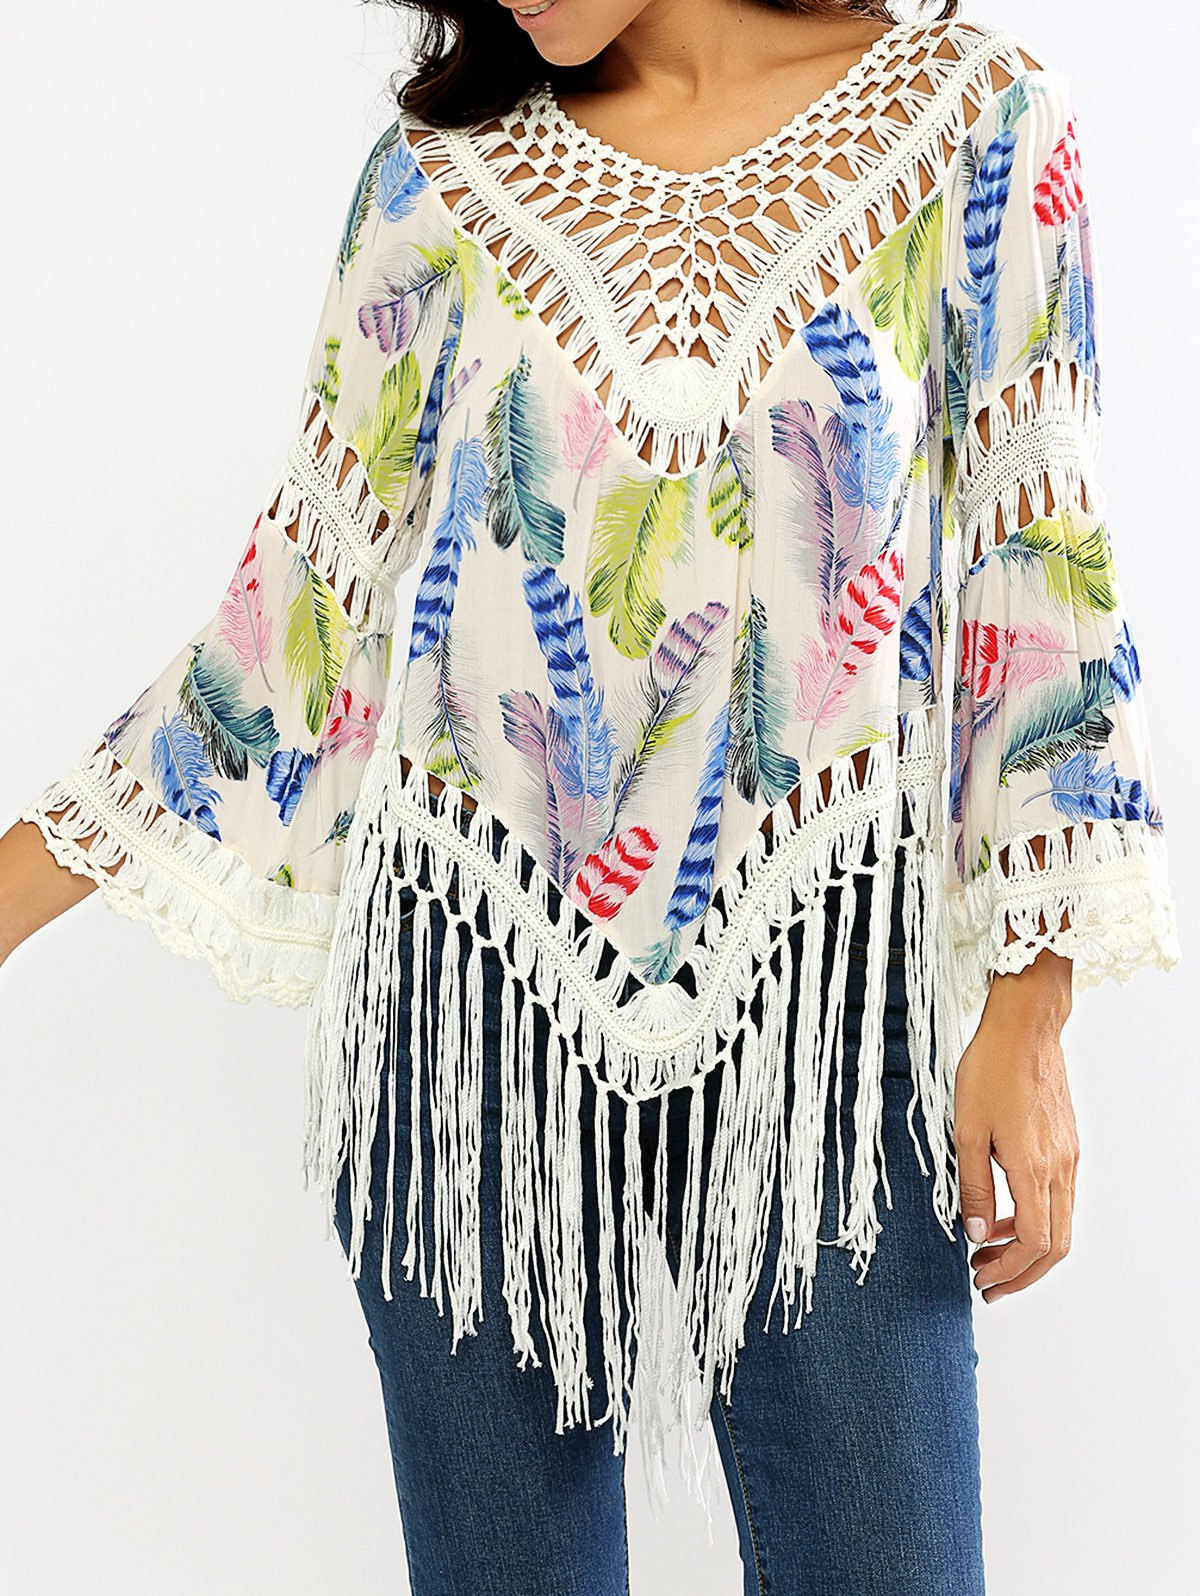 Openwork Feather Print Fringed Blouse - WHITE ONE SIZE